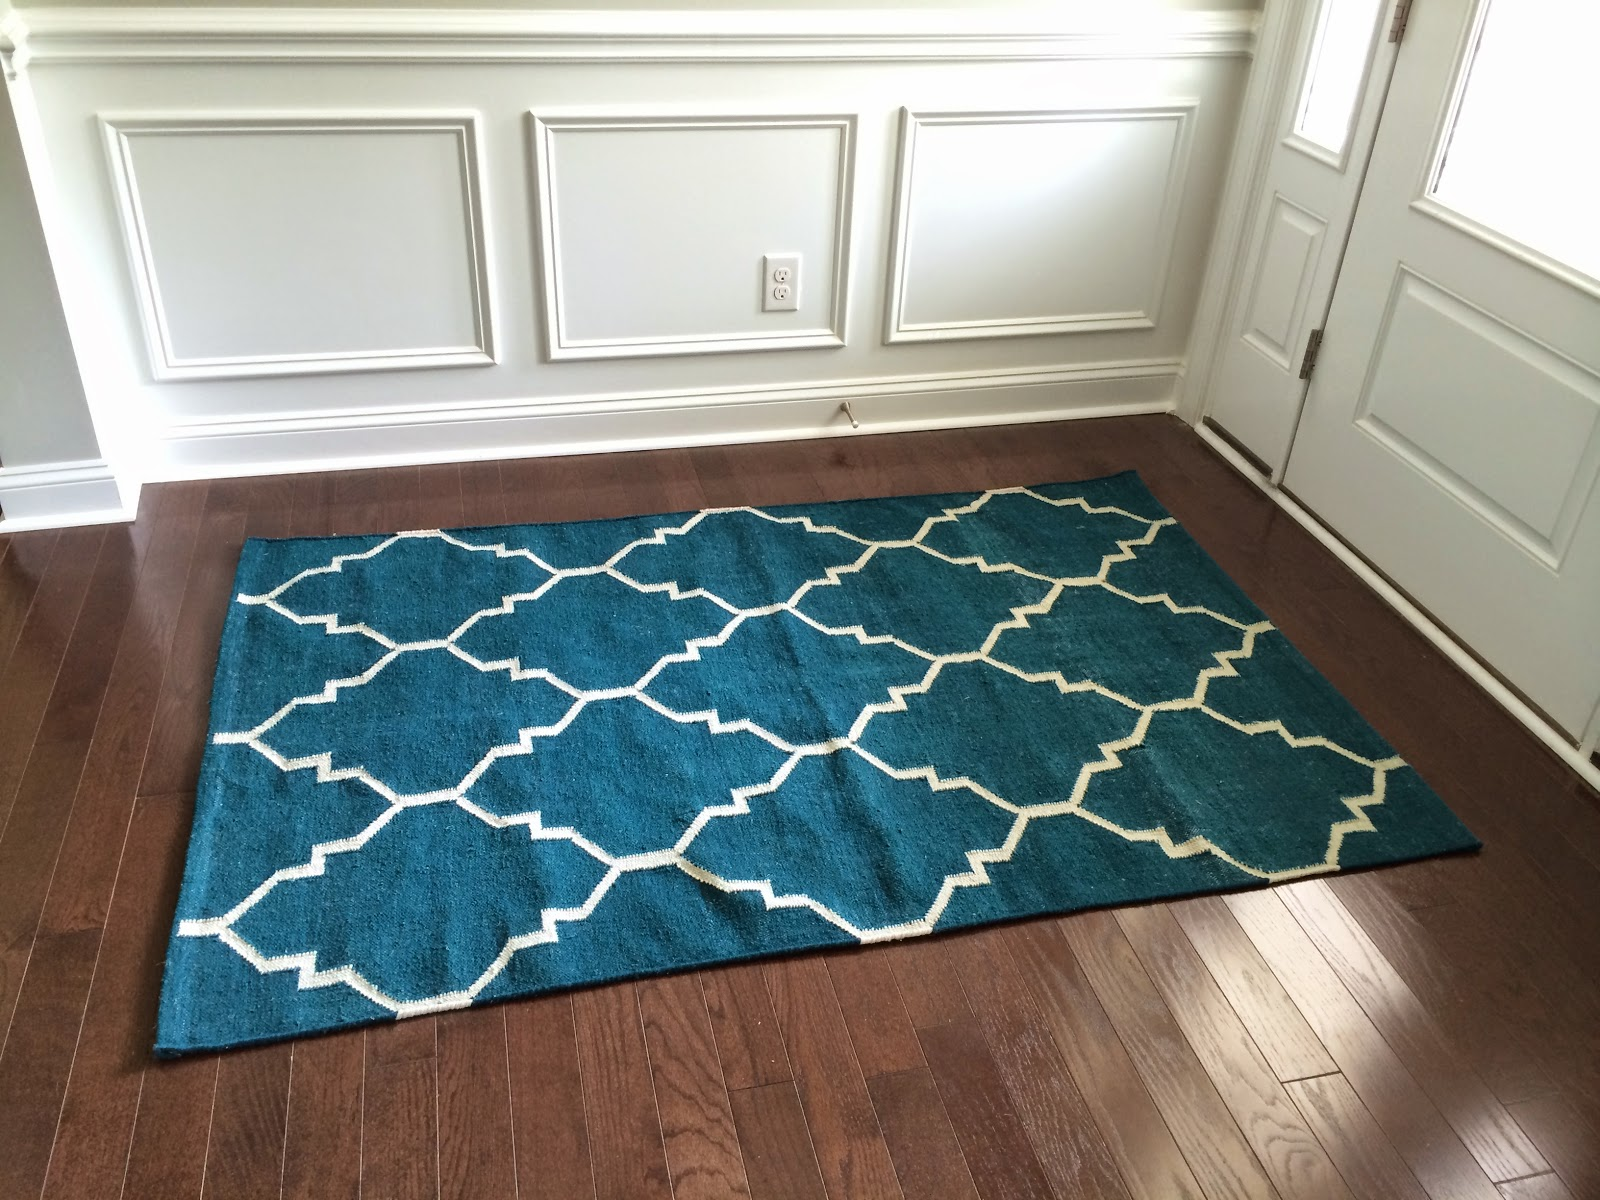 Another HomeGoods Rug Purchase